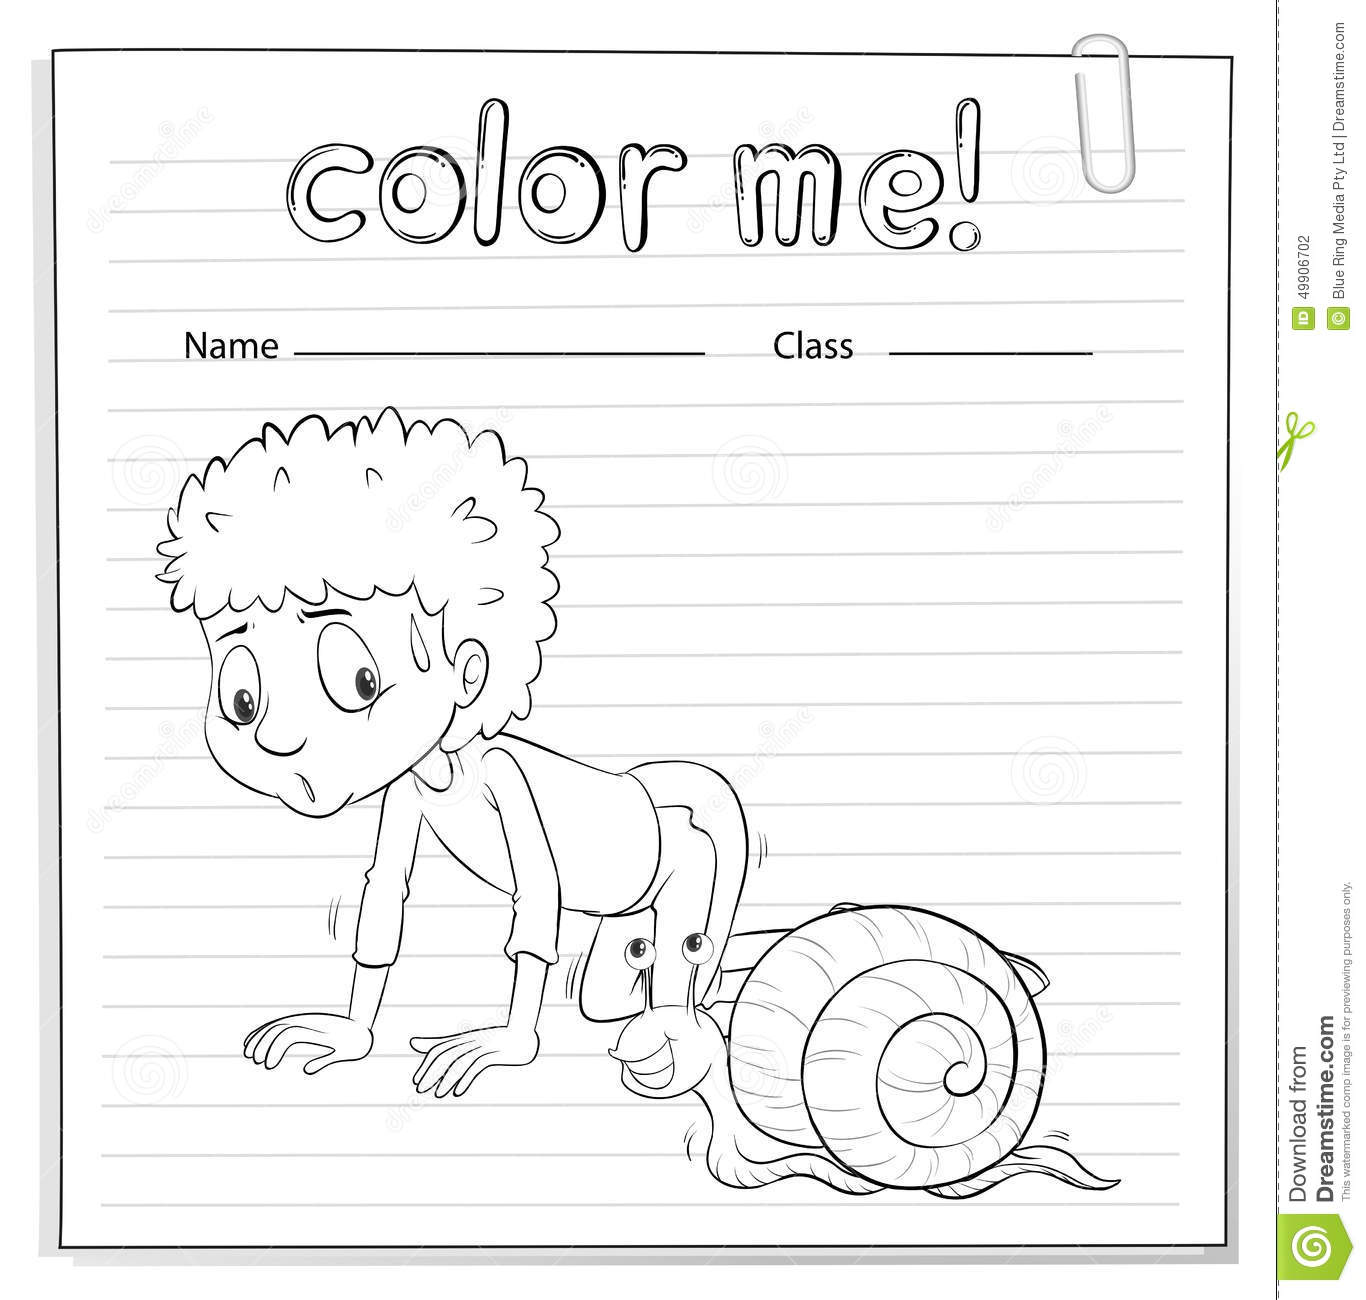 Worksheet Kid Worksheet a color me worksheet with kid and snail stock vector image snail